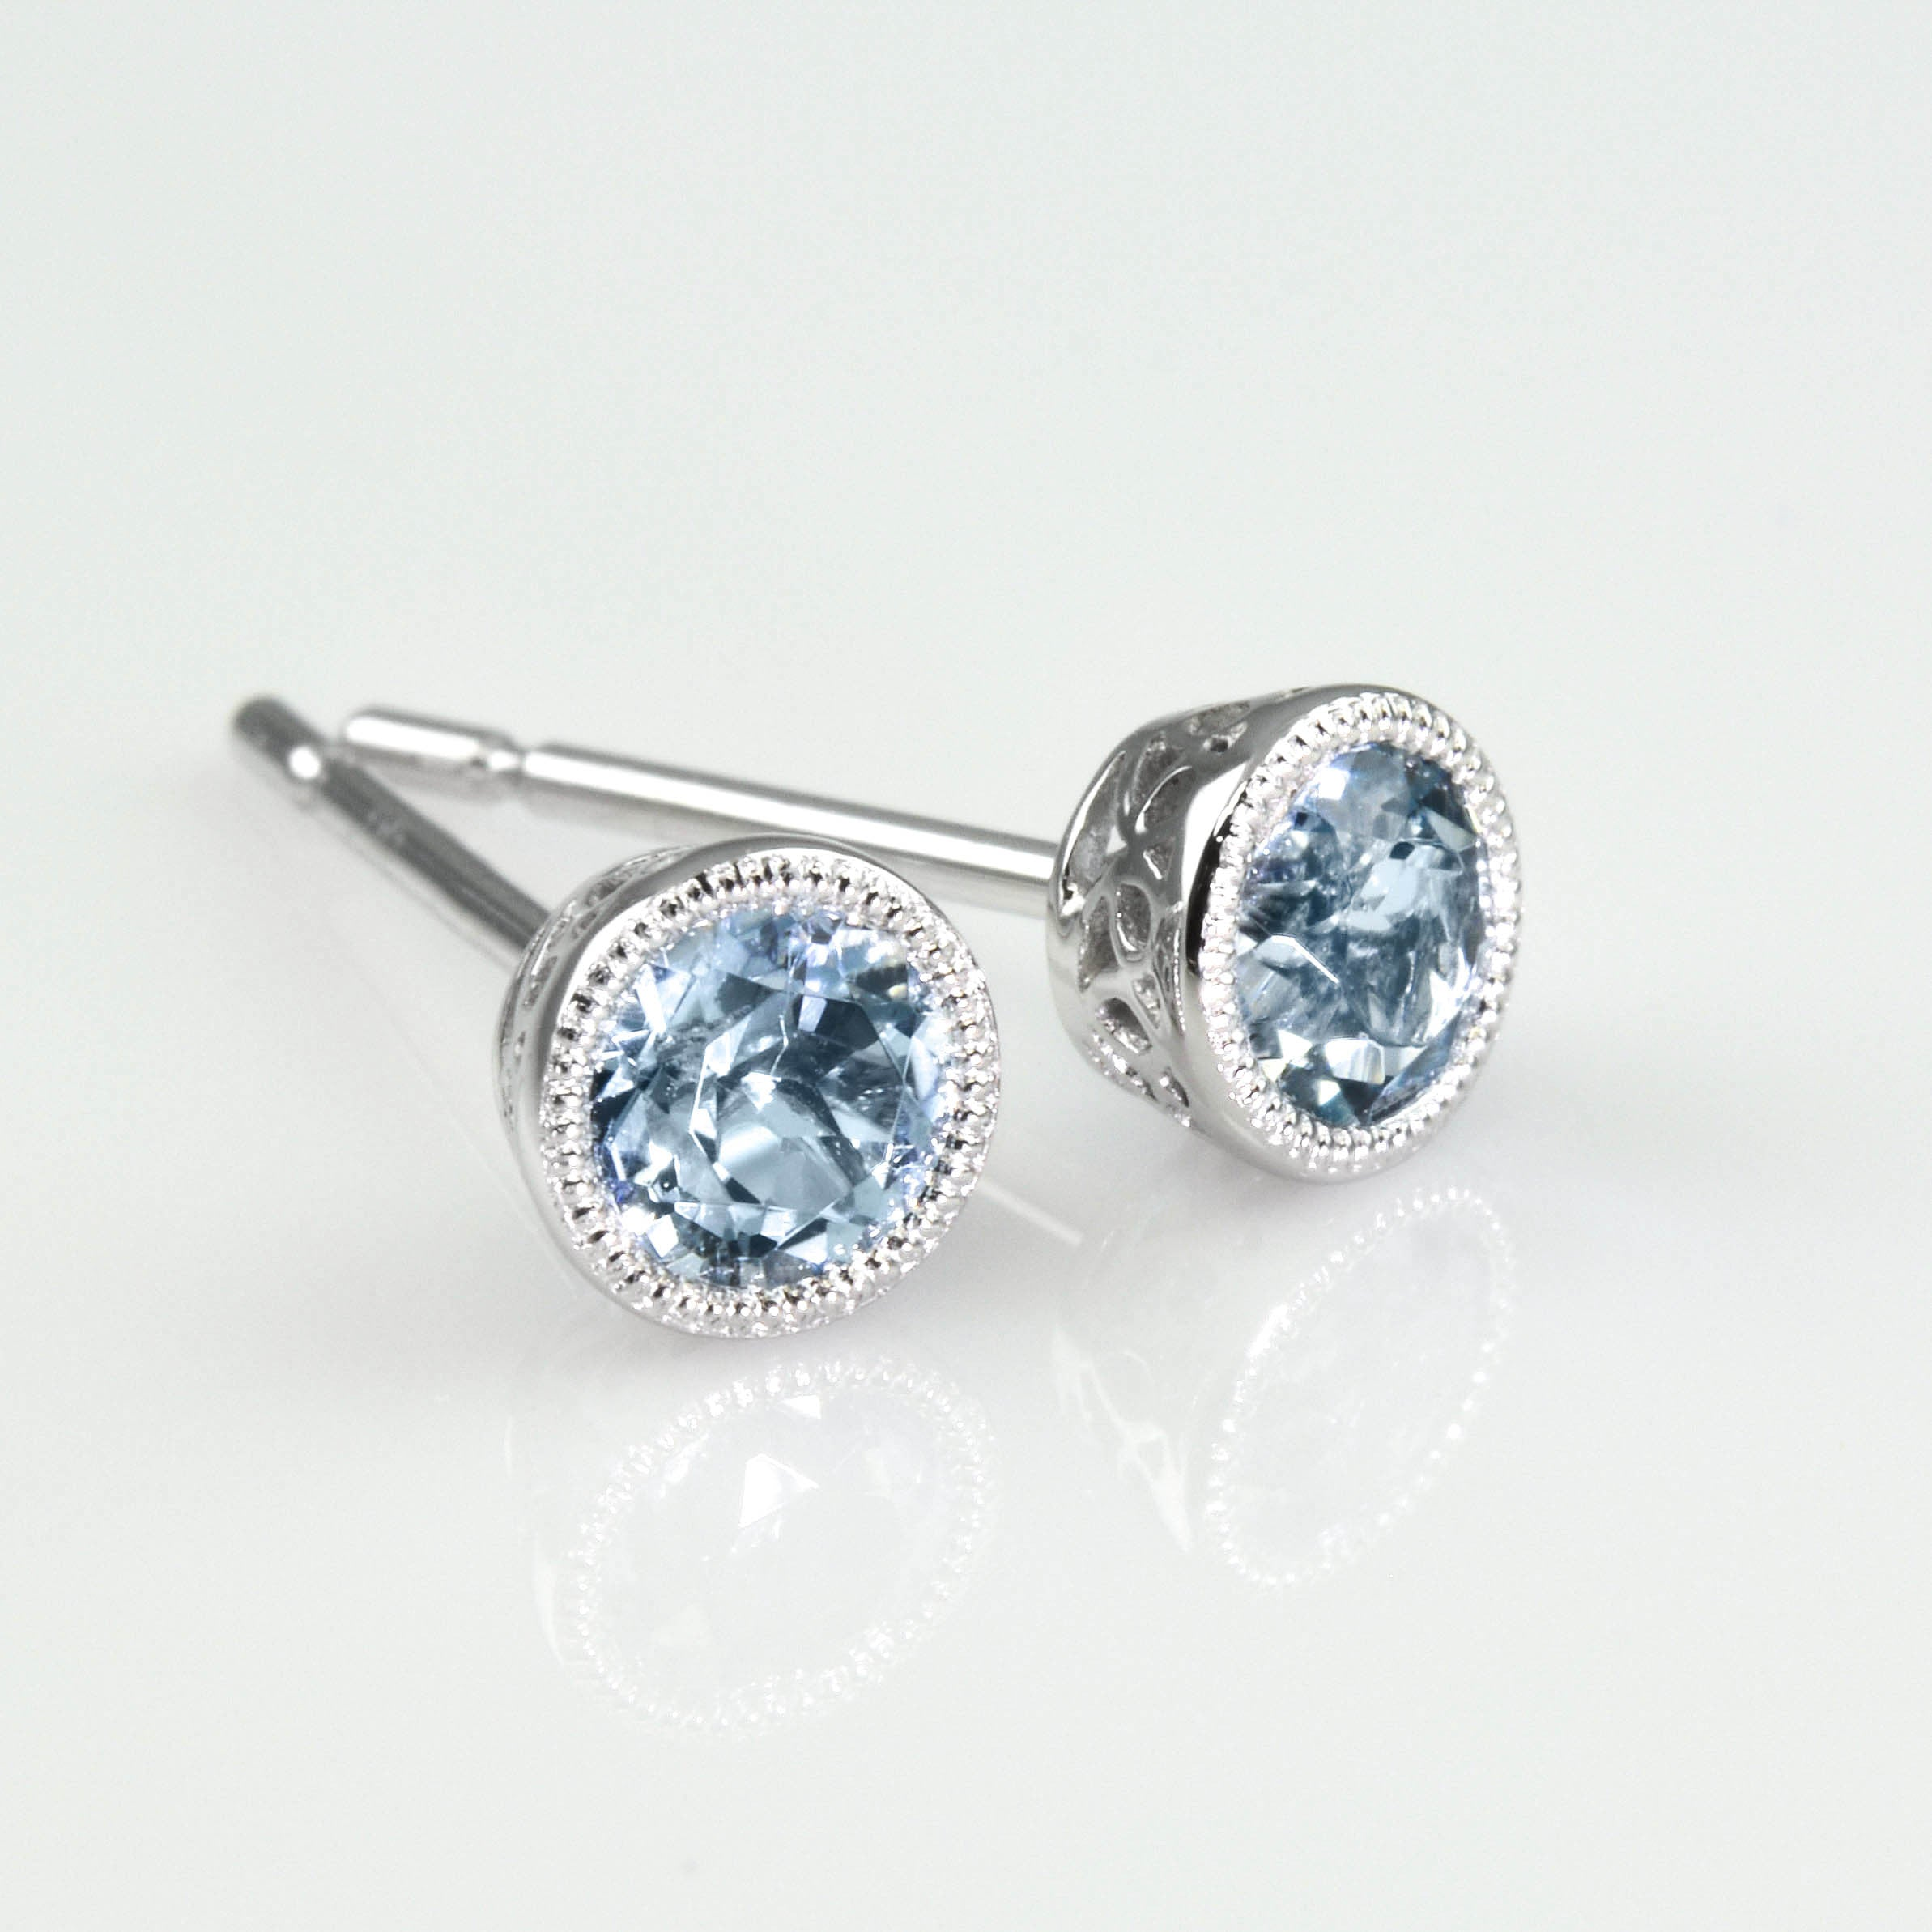 sterling overstock free earrings aquamarine shipping silver product genuine jewelry today malaika com carat watches